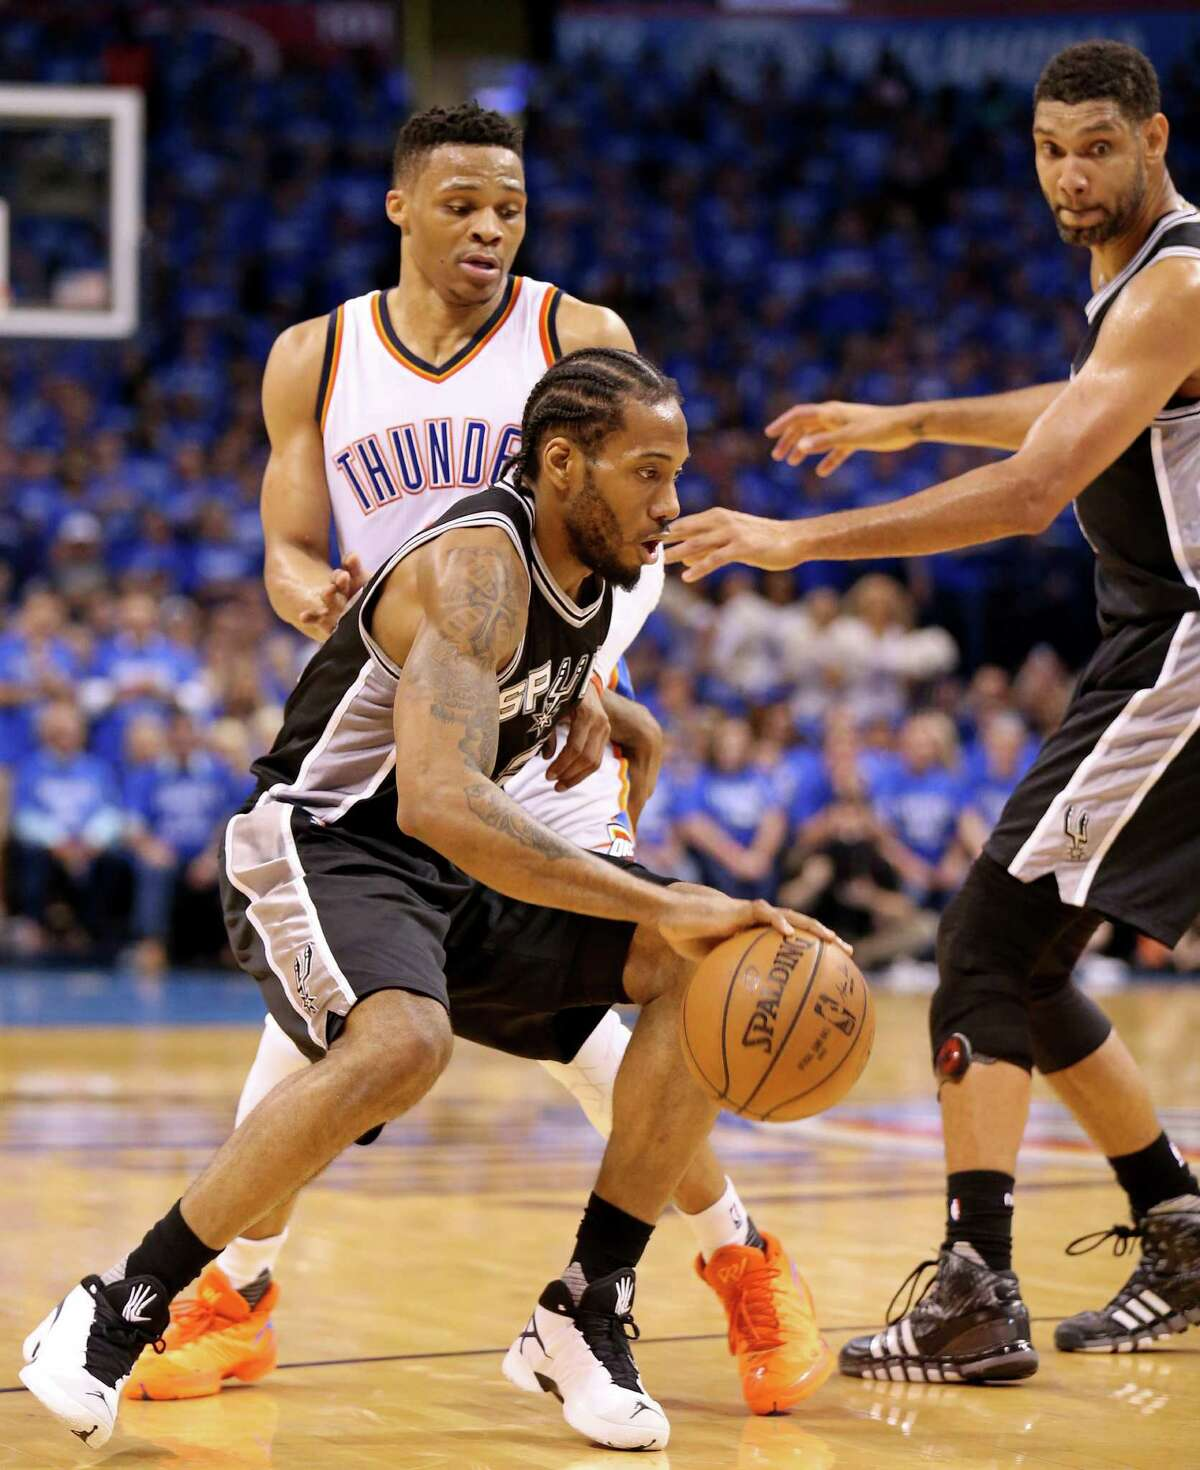 Spurs' Kawhi Leonard looks for room around Oklahoma City Thunder's Russell Westbrook as Tim Duncan moves in on the play during second-half action of Game 6 in the Western Conference semifinals on May 12, 2016 at Chesapeake Energy Arena.